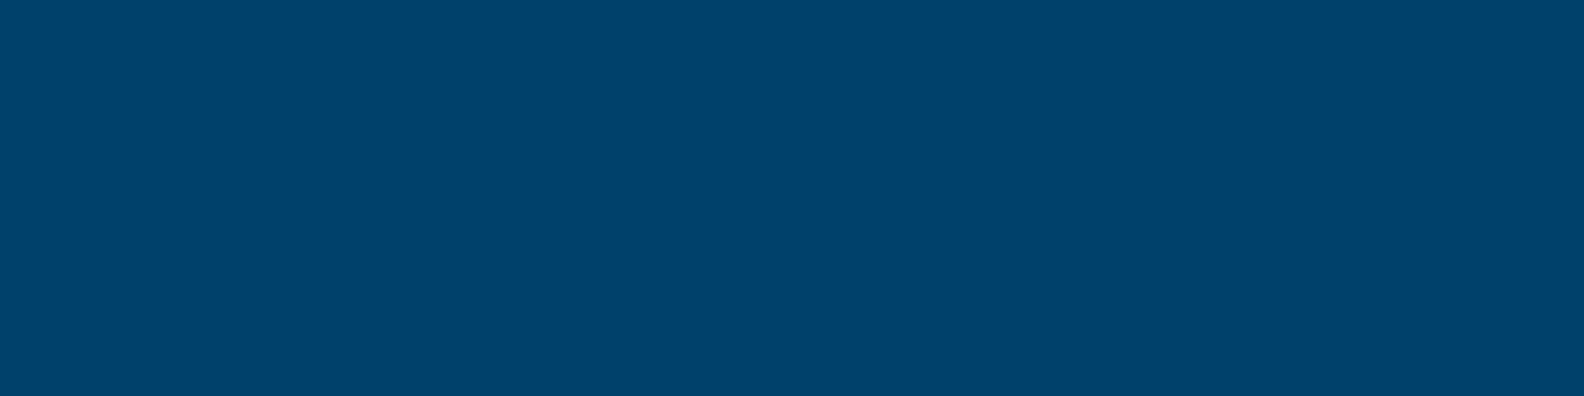 1584x396 Dark Imperial Blue Solid Color Background